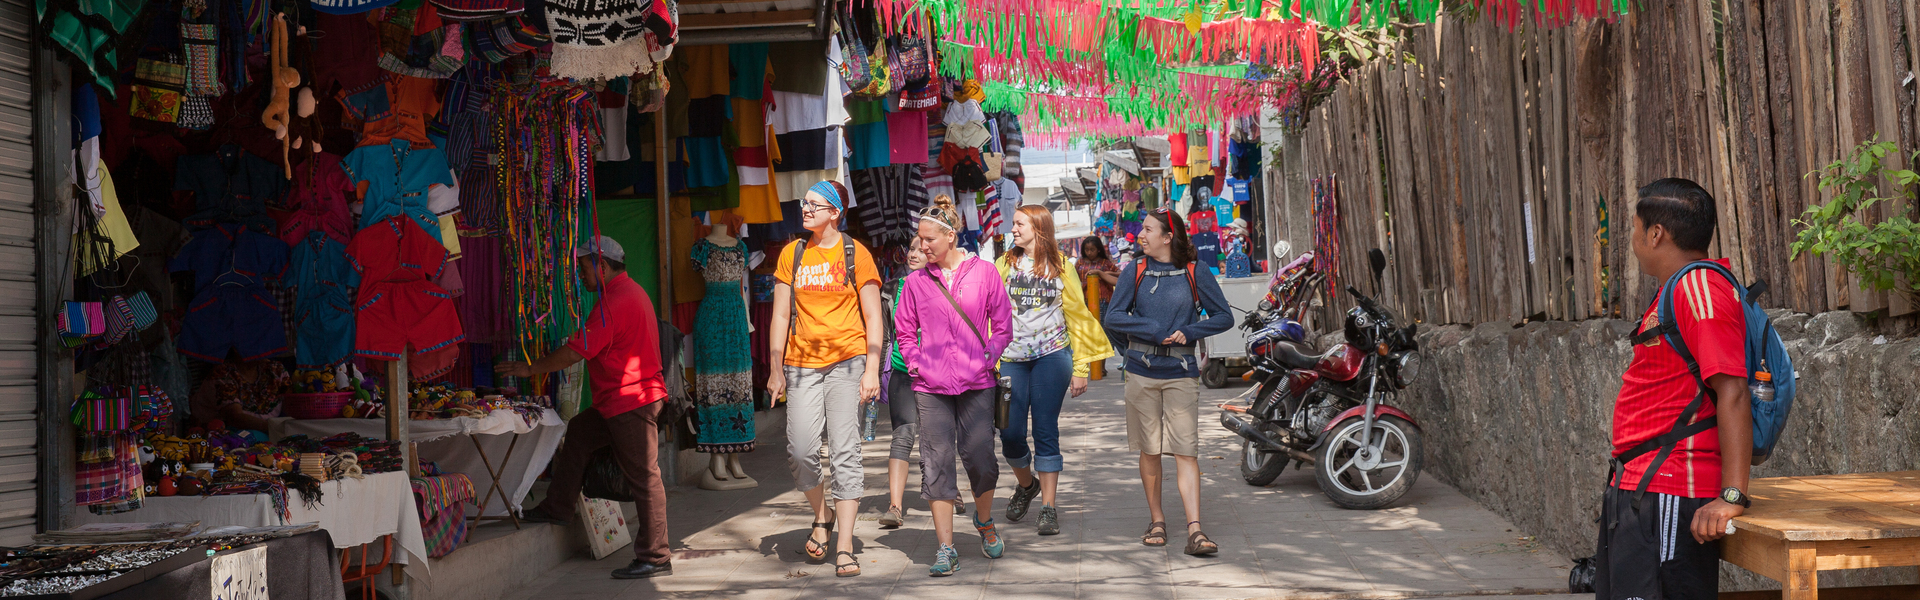 Students walk through street market in Guatemala